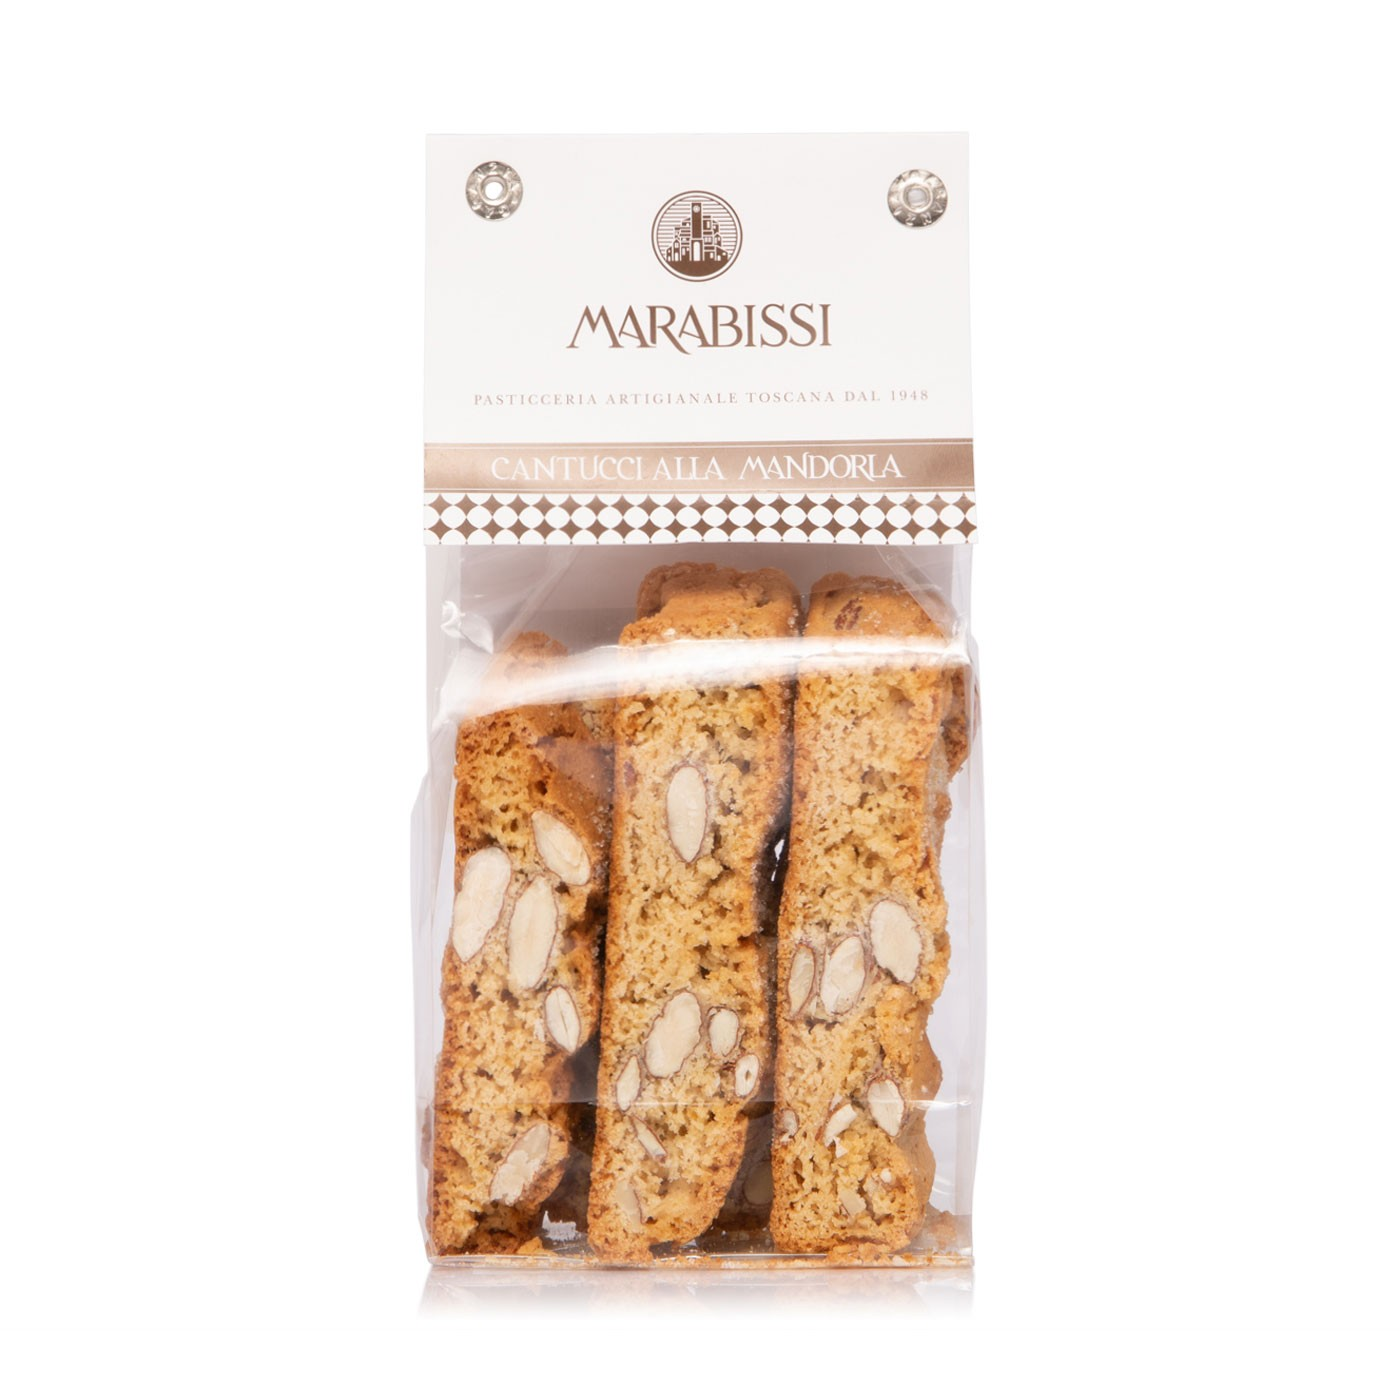 Almond Cantucci Cookies 4.2 oz